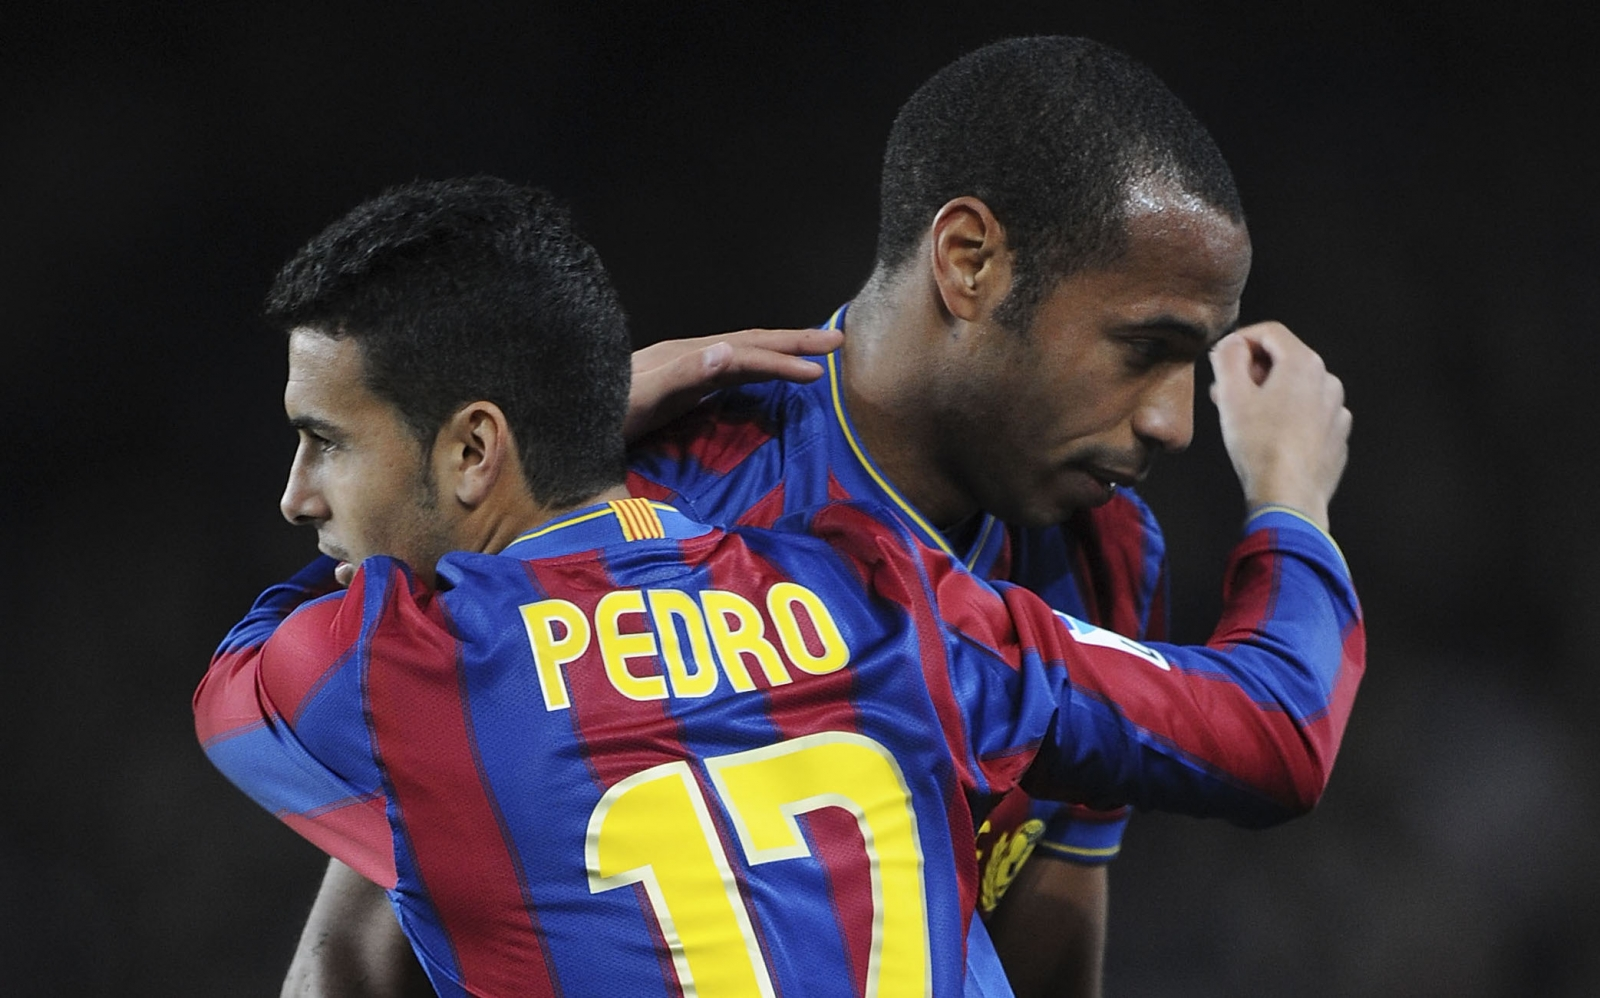 Pedro and Thierry Henry